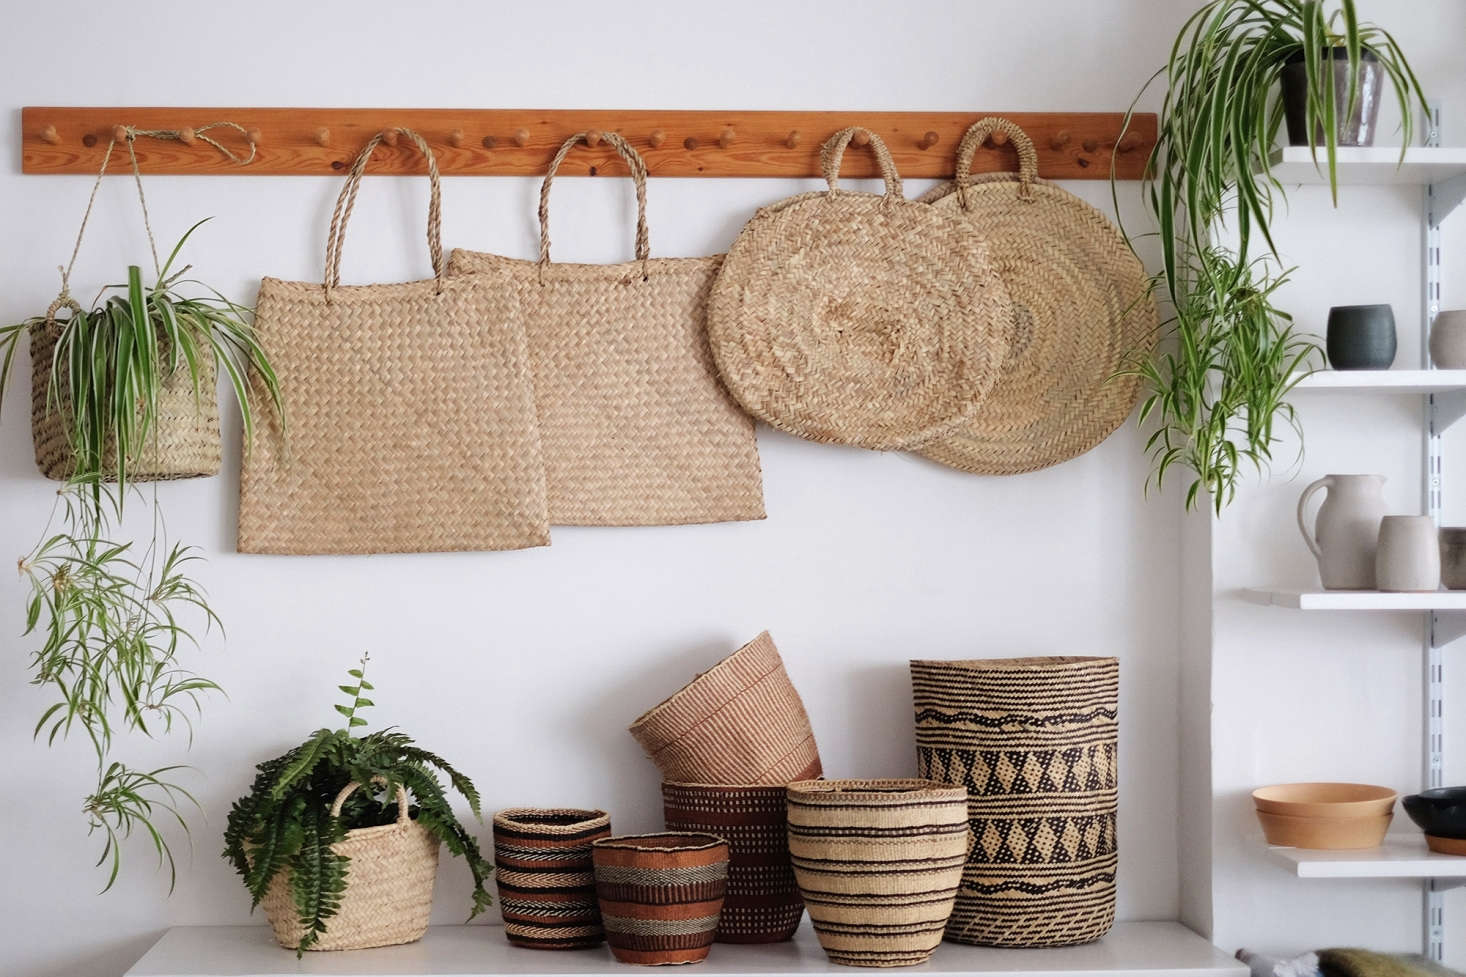 Handmade woven bags and baskets include a Round Basket (£3